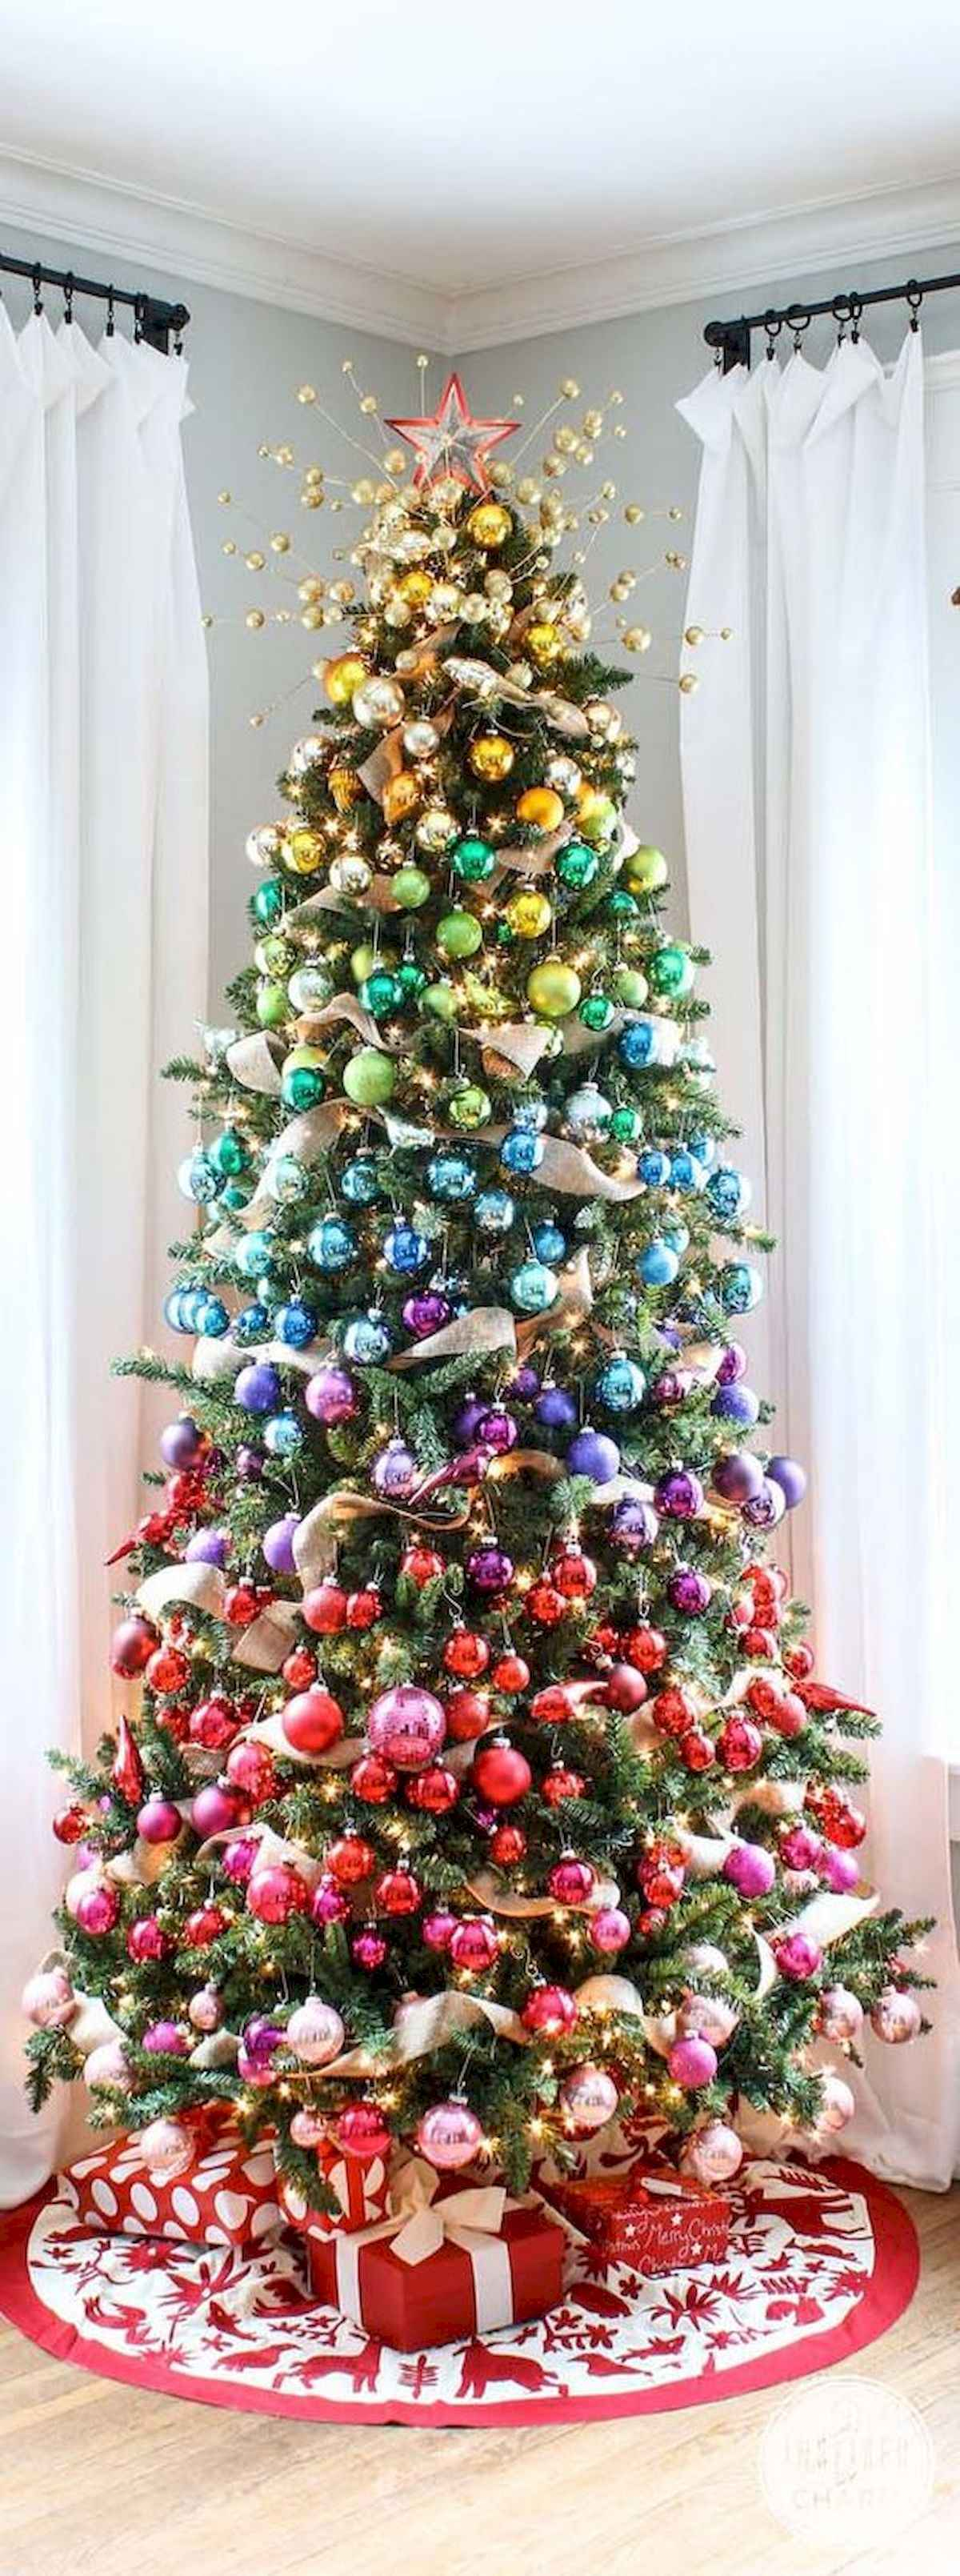 60 awesome christmas tree decorations ideas (52)